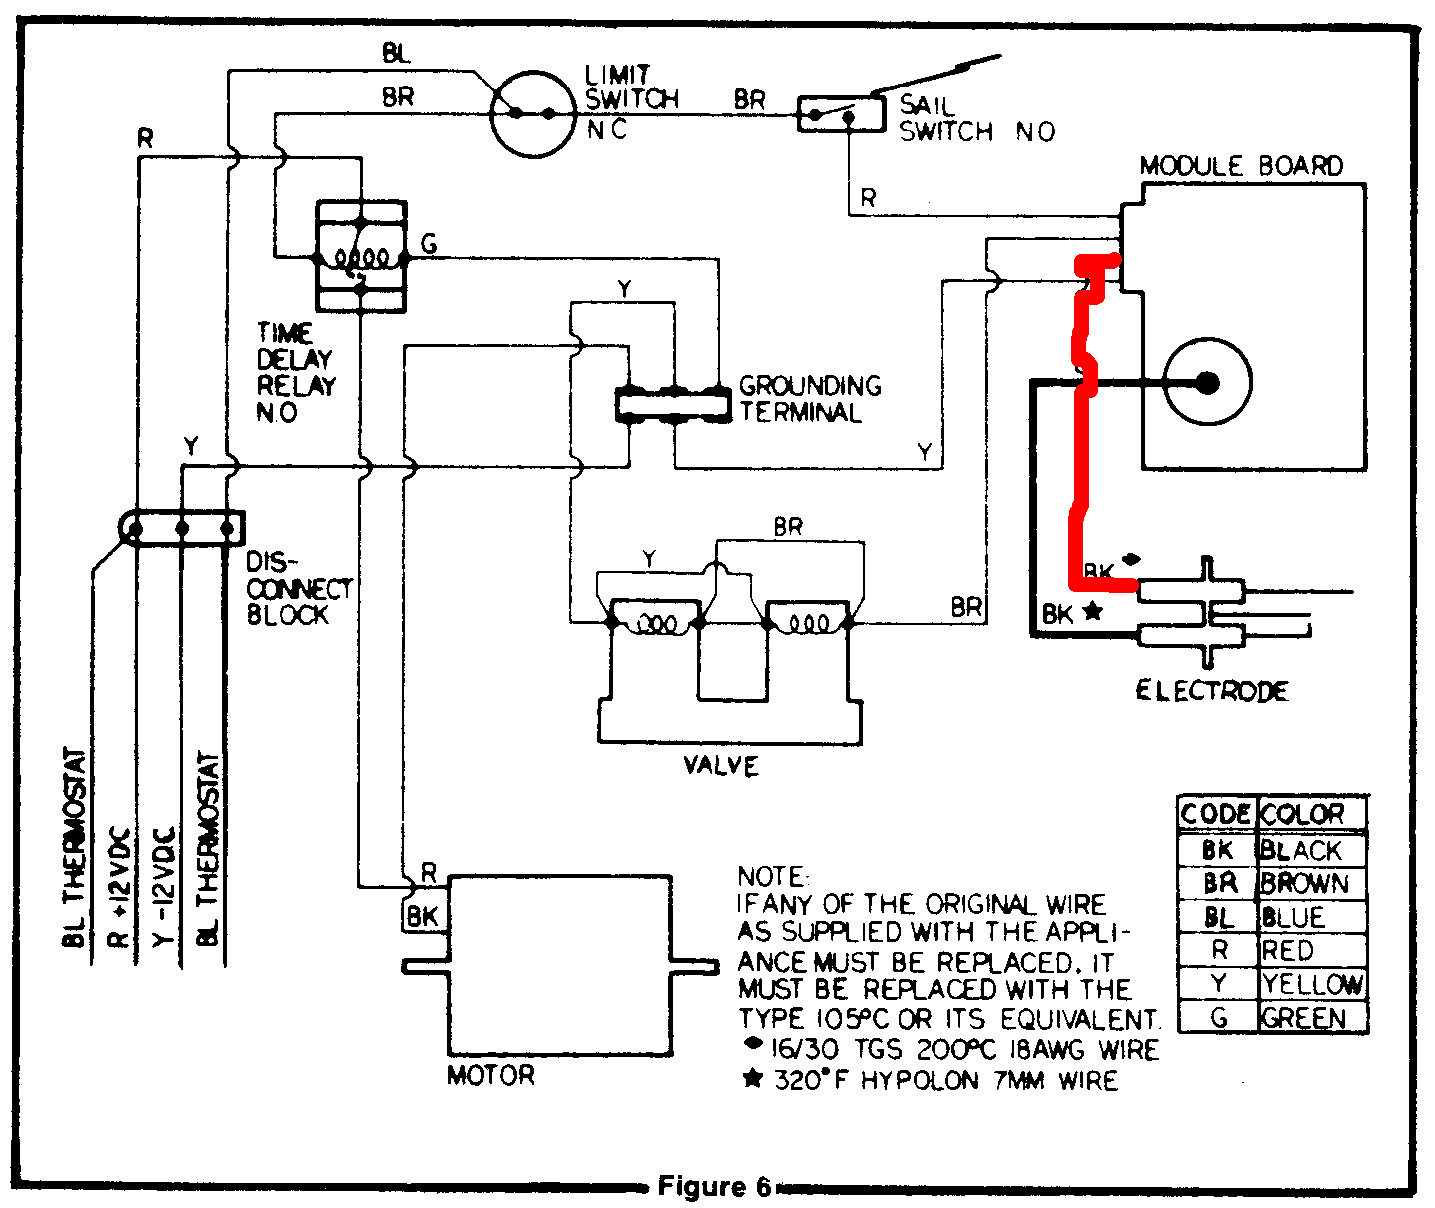 Wiring Diagram York Gas Furnace I Have | Manual E-Books - Gas Furnace Wiring Diagram